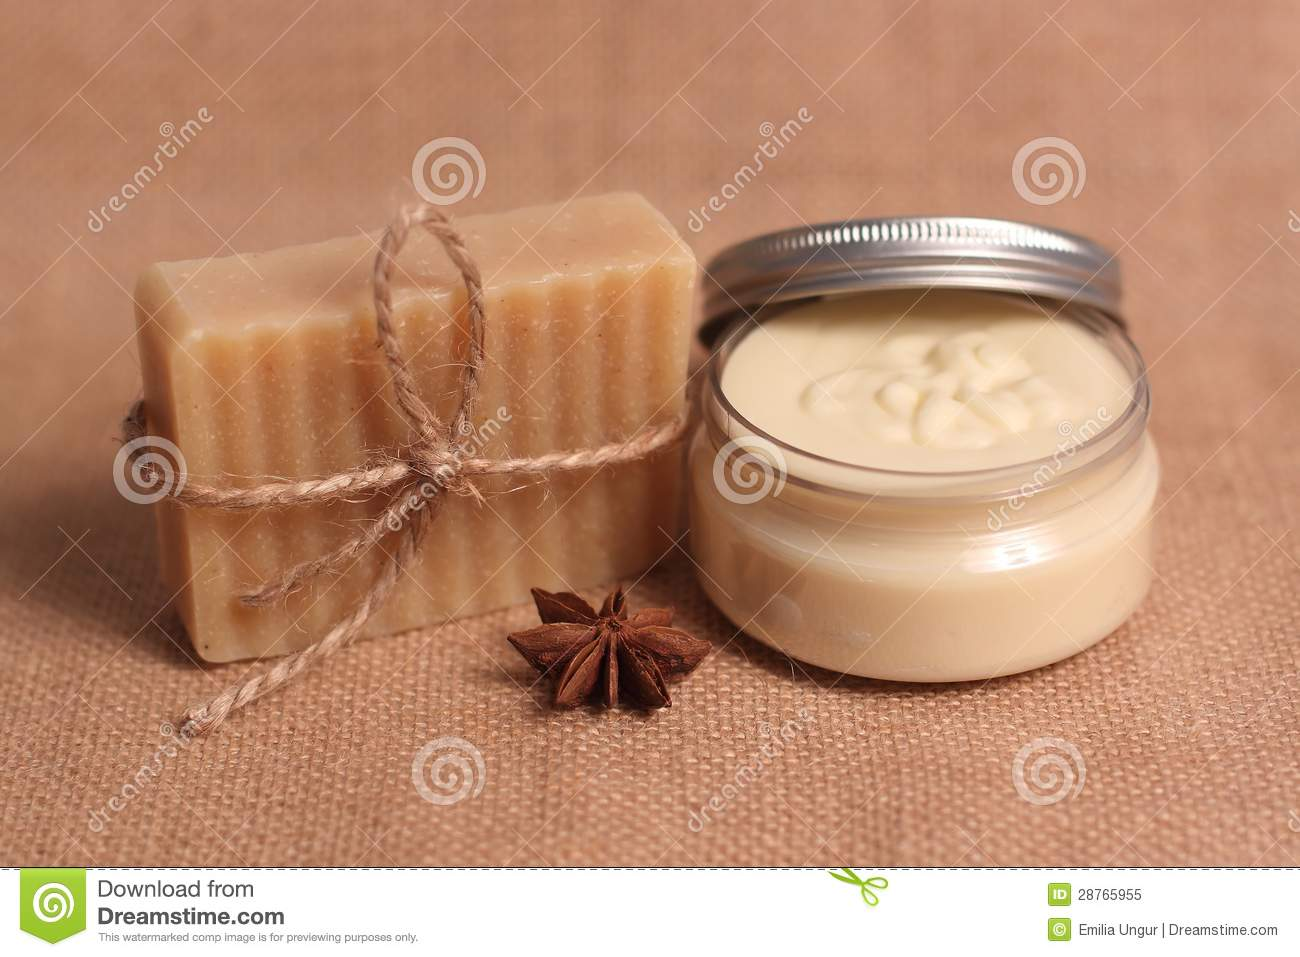 Homemade soap and body butter